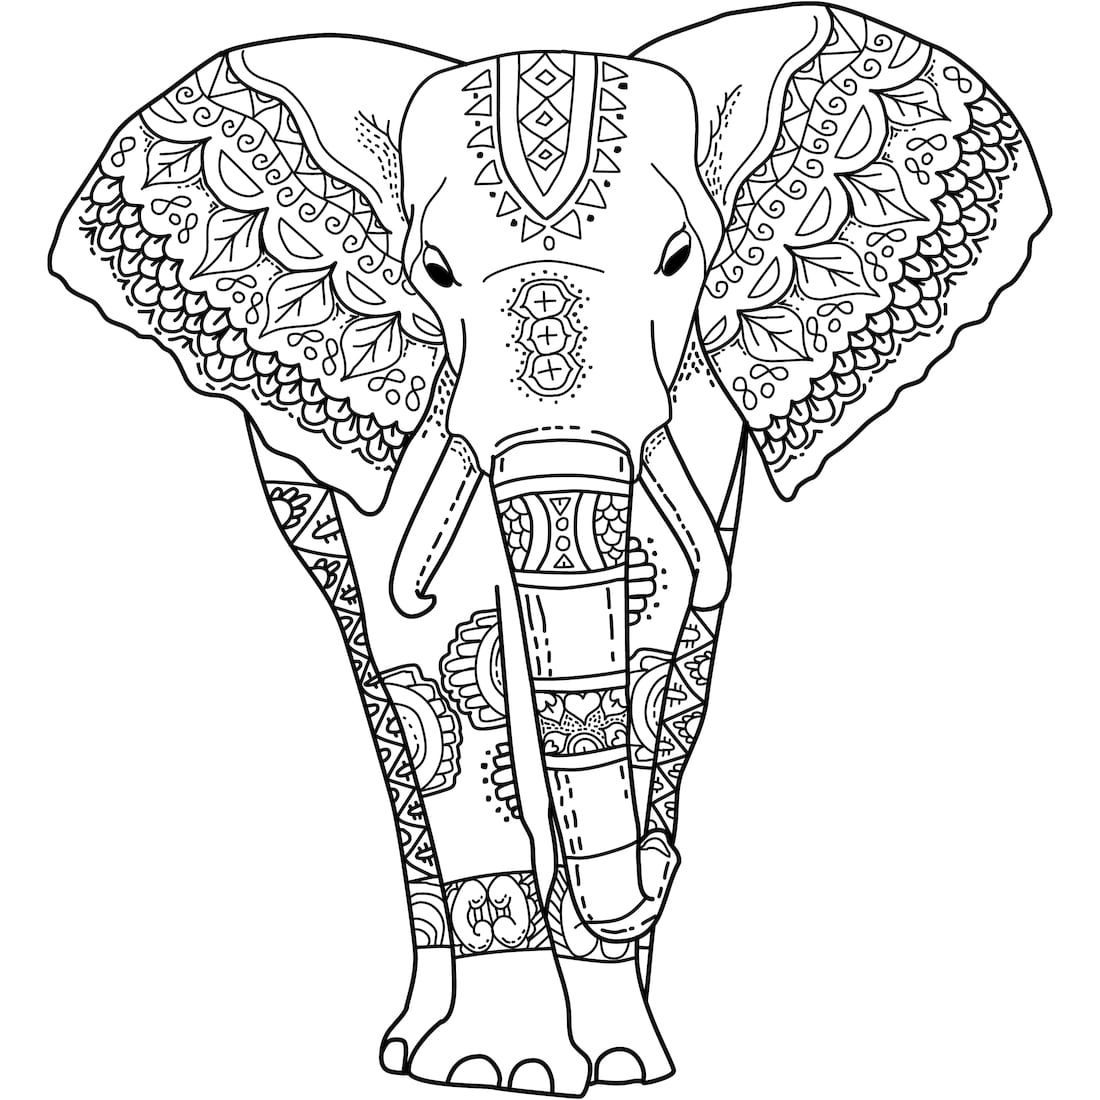 Elephant Adult Coloring Pages Adult Coloring Pages Elephant Coloring Pages